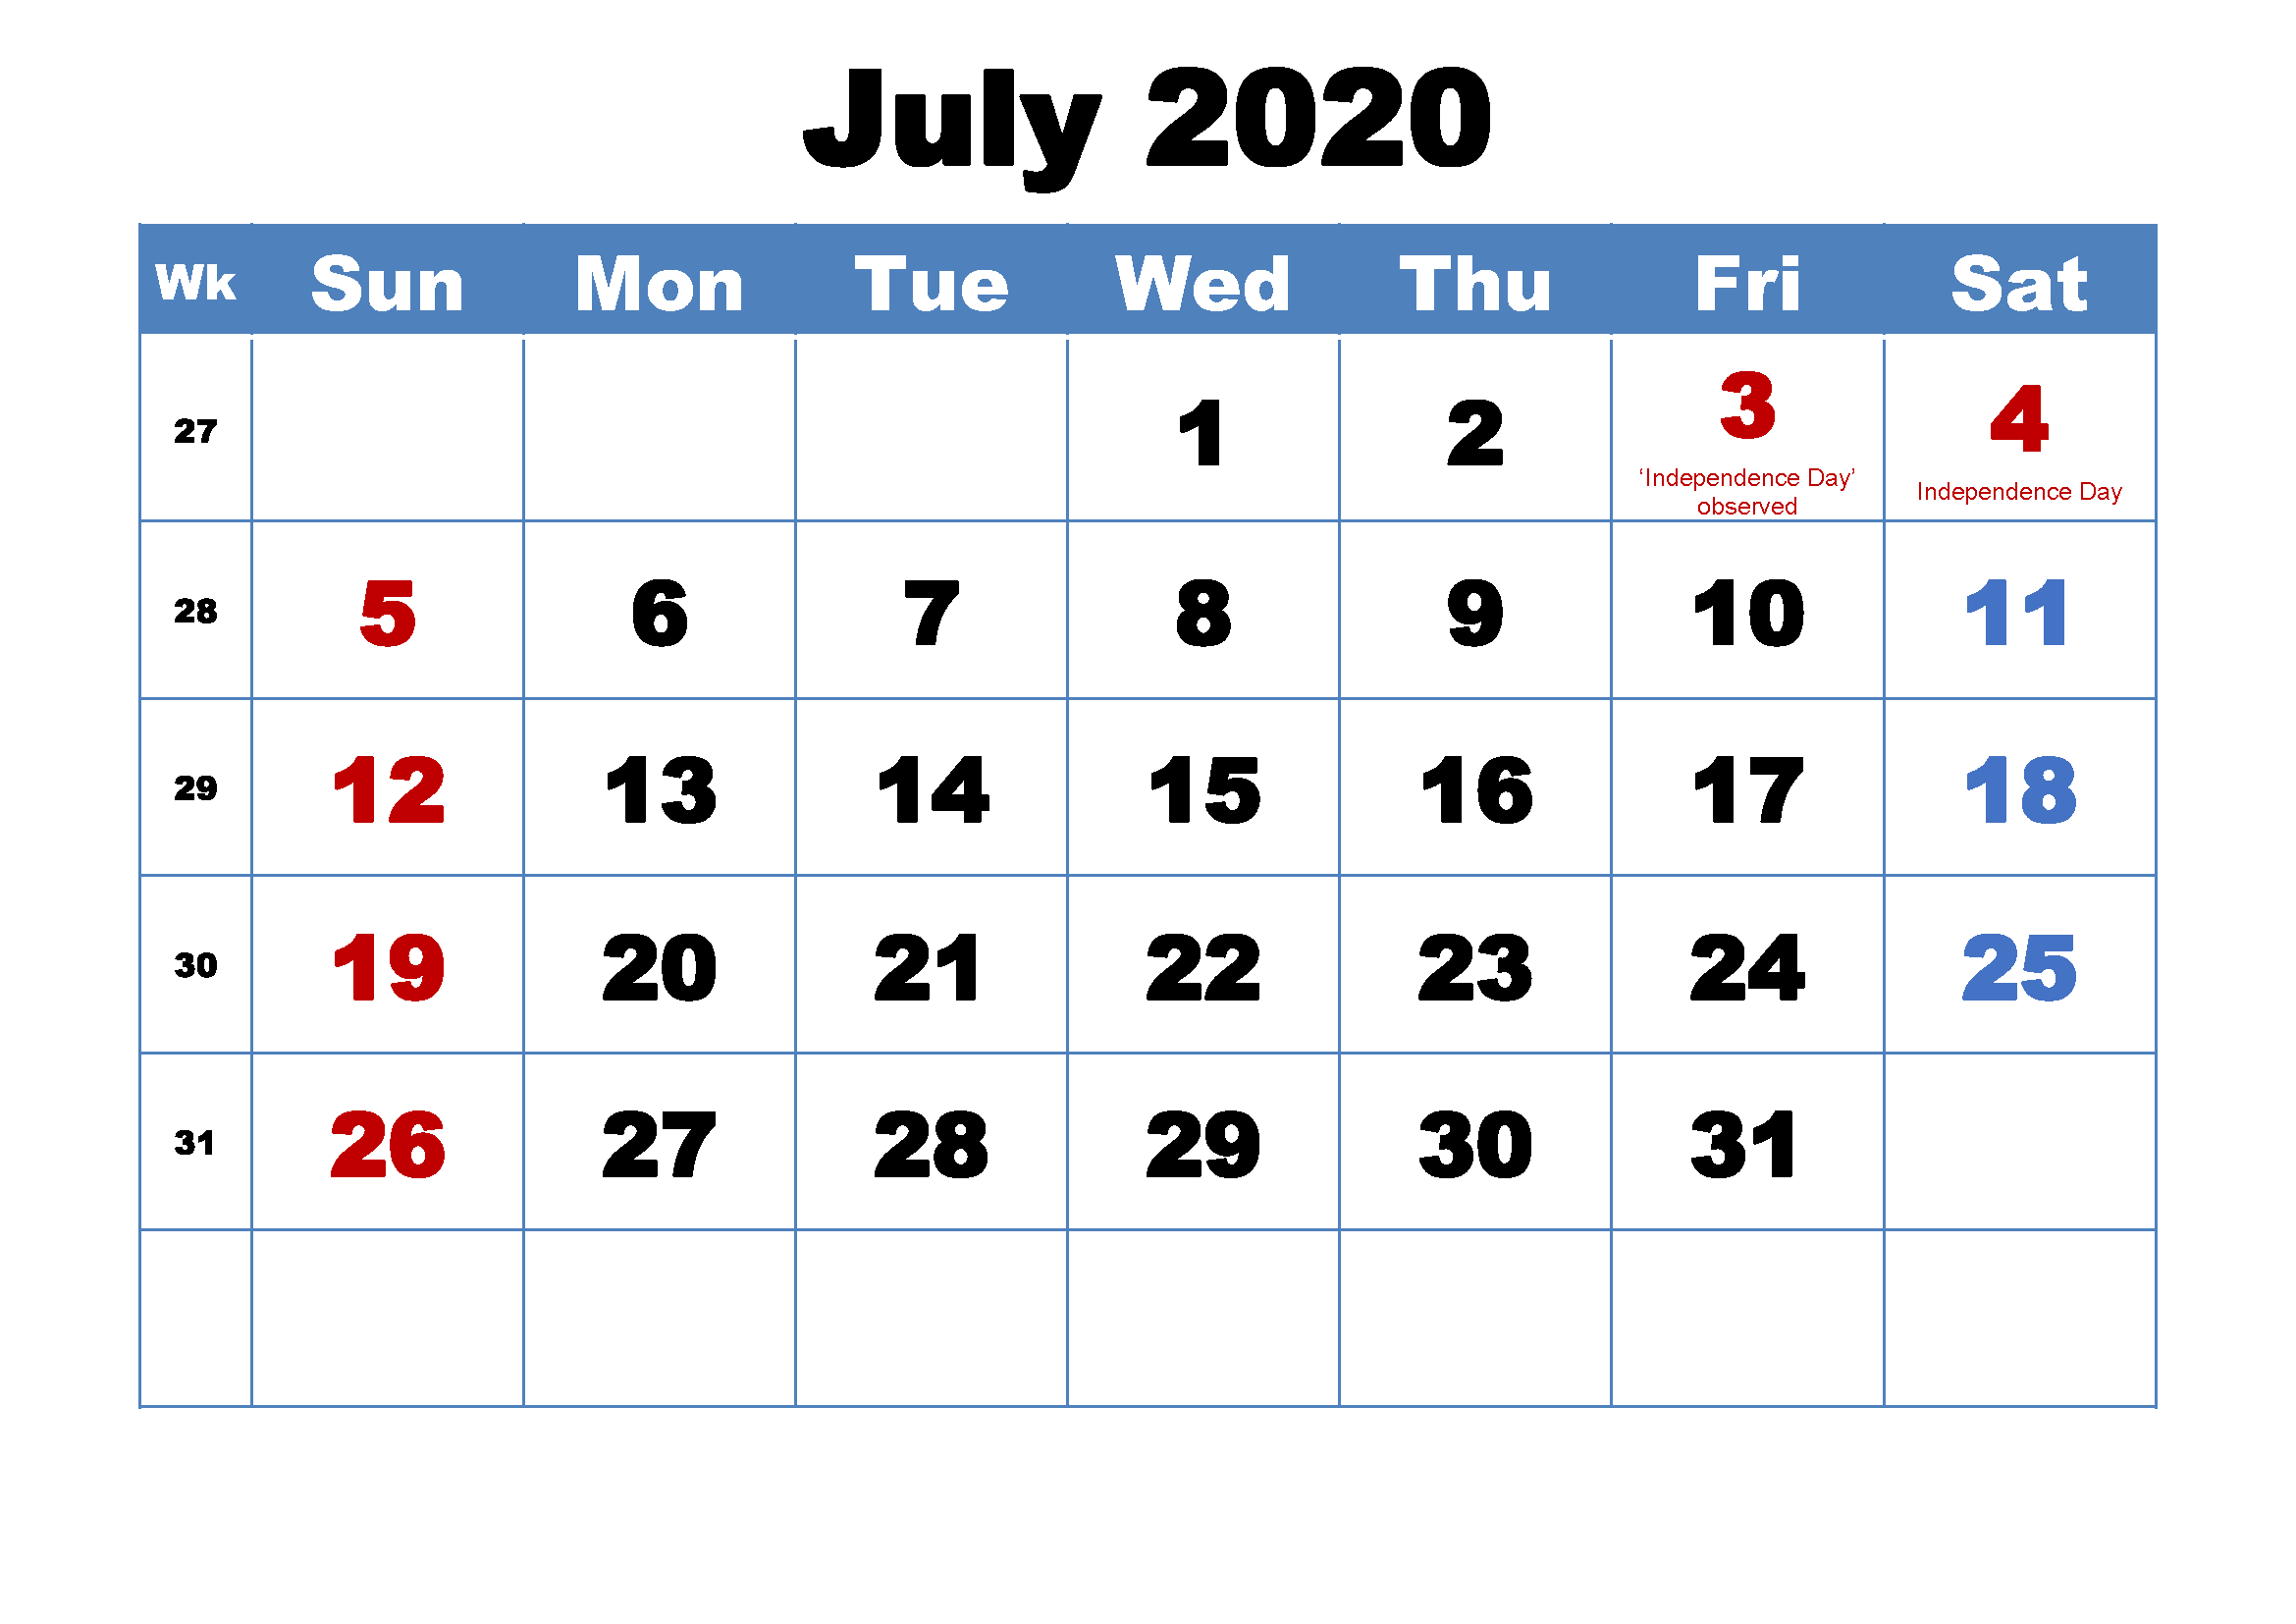 July 2020 Calendar Template Google Sheet